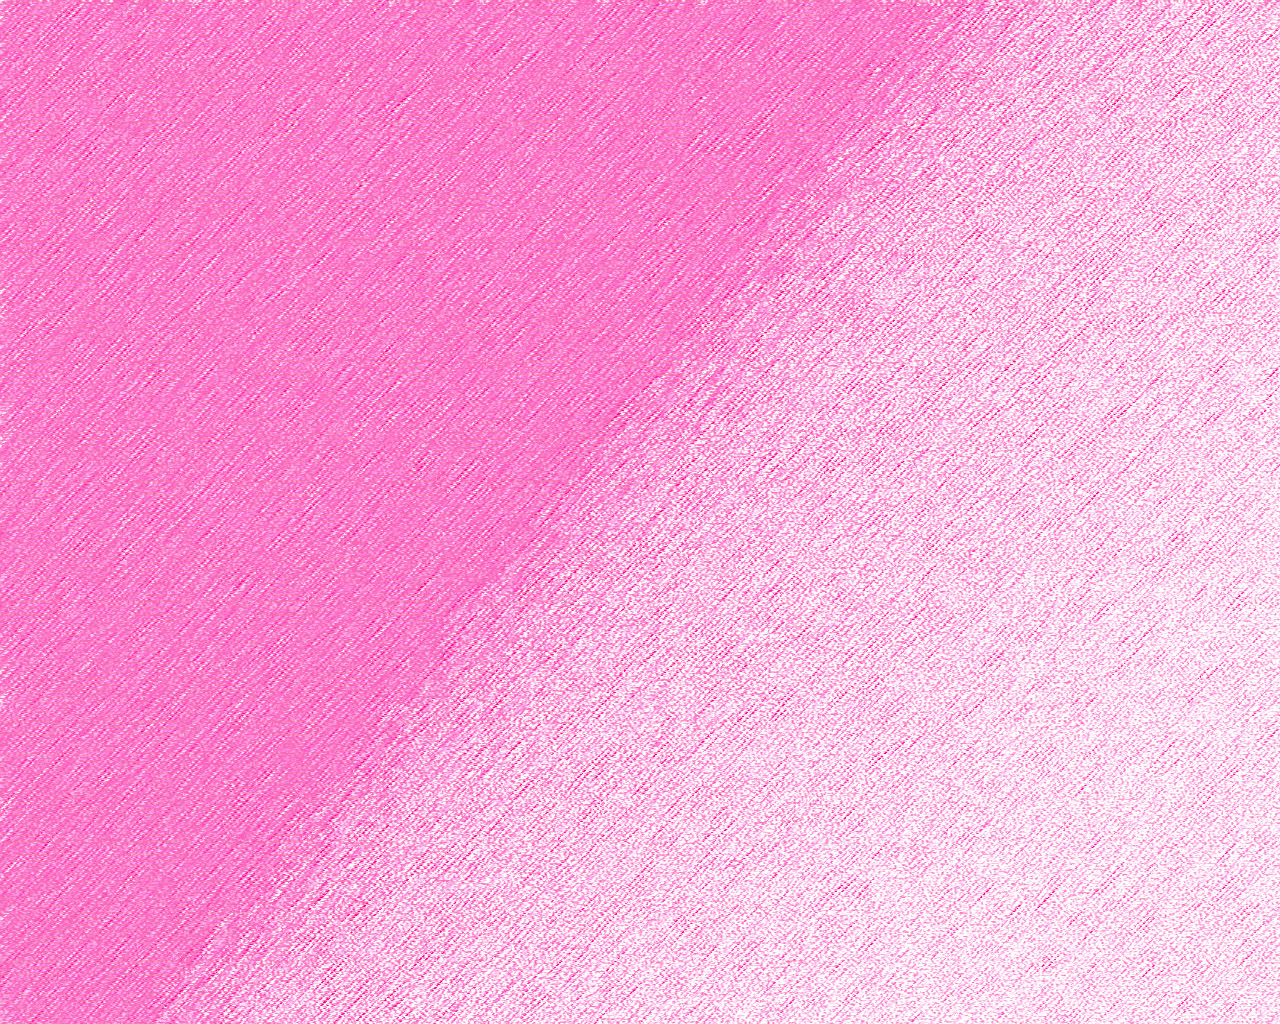 Pink Abstract Cute Really Backgrounds 1195987 Wallpaper